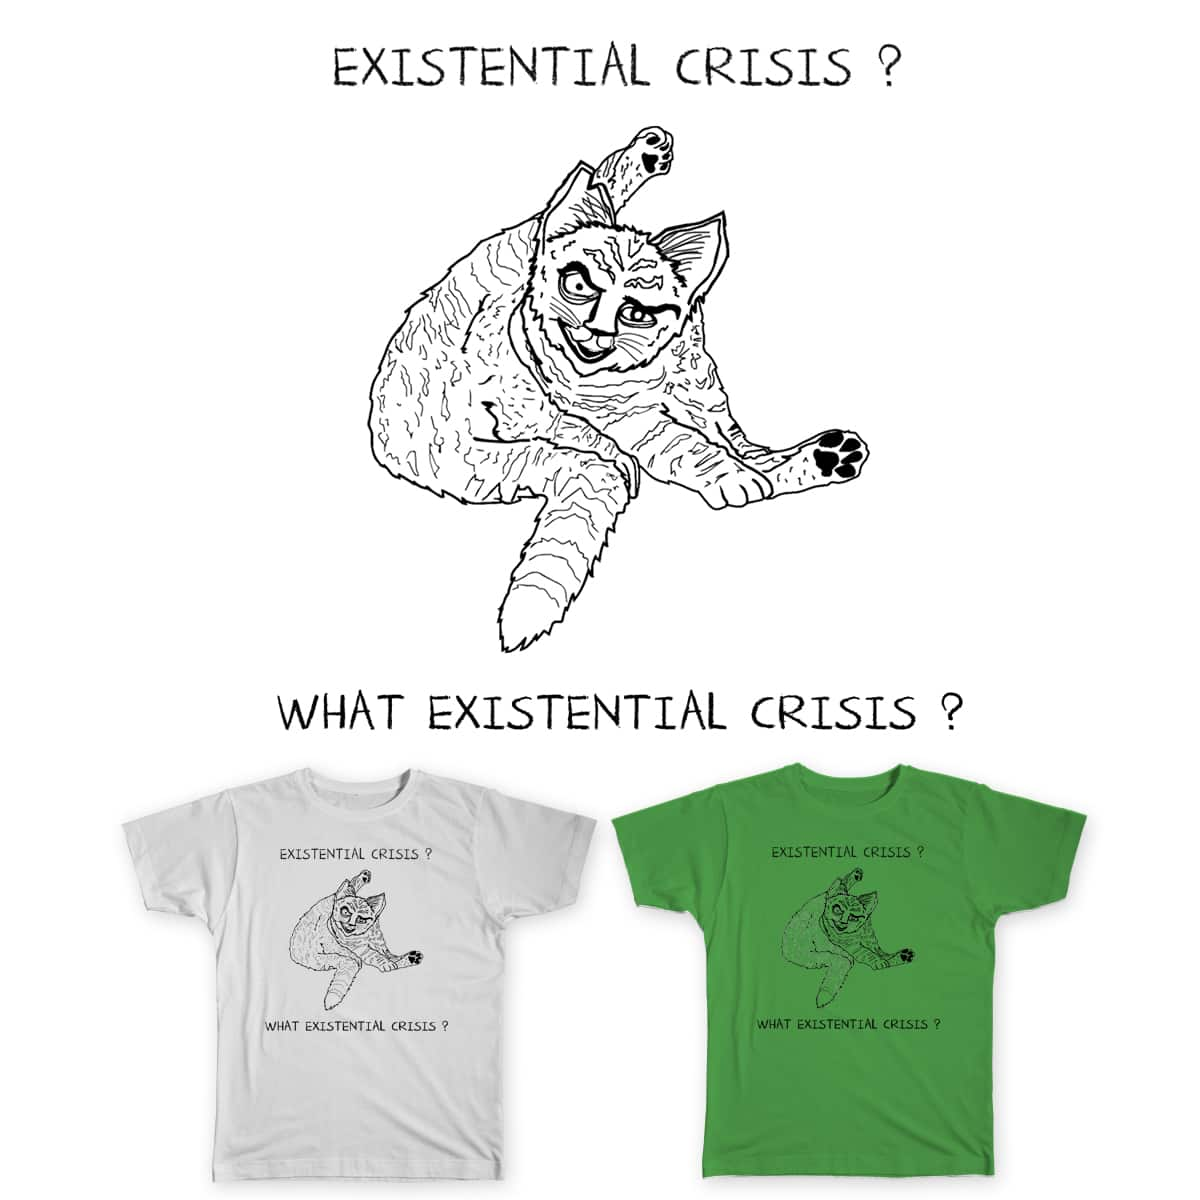 EXISTENTIAL CRISIS? by ronemahone on Threadless